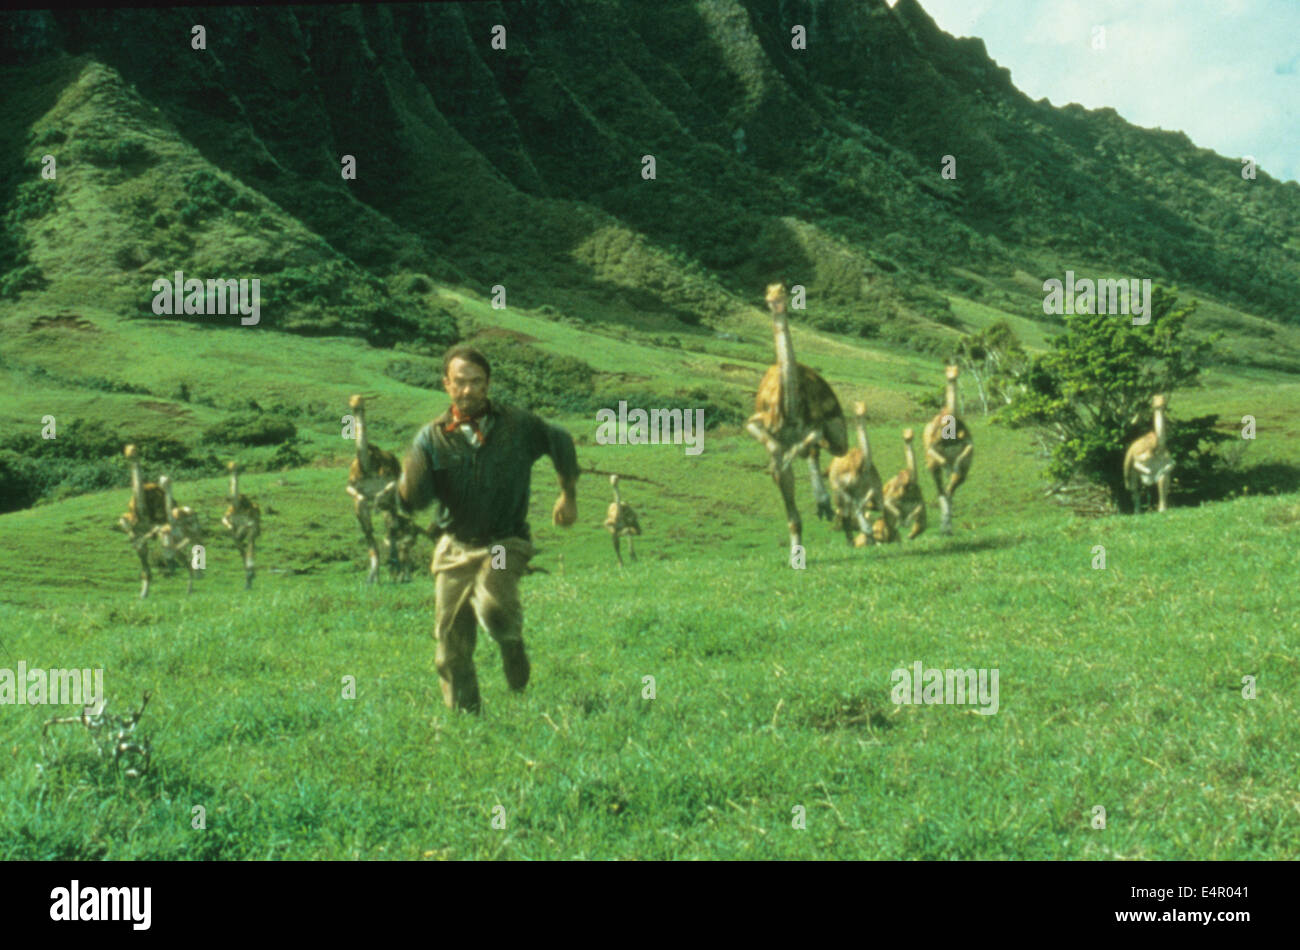 Jurassic Park 1993 Universal Pictures Film With Sam Neil Stock Photo Alamy